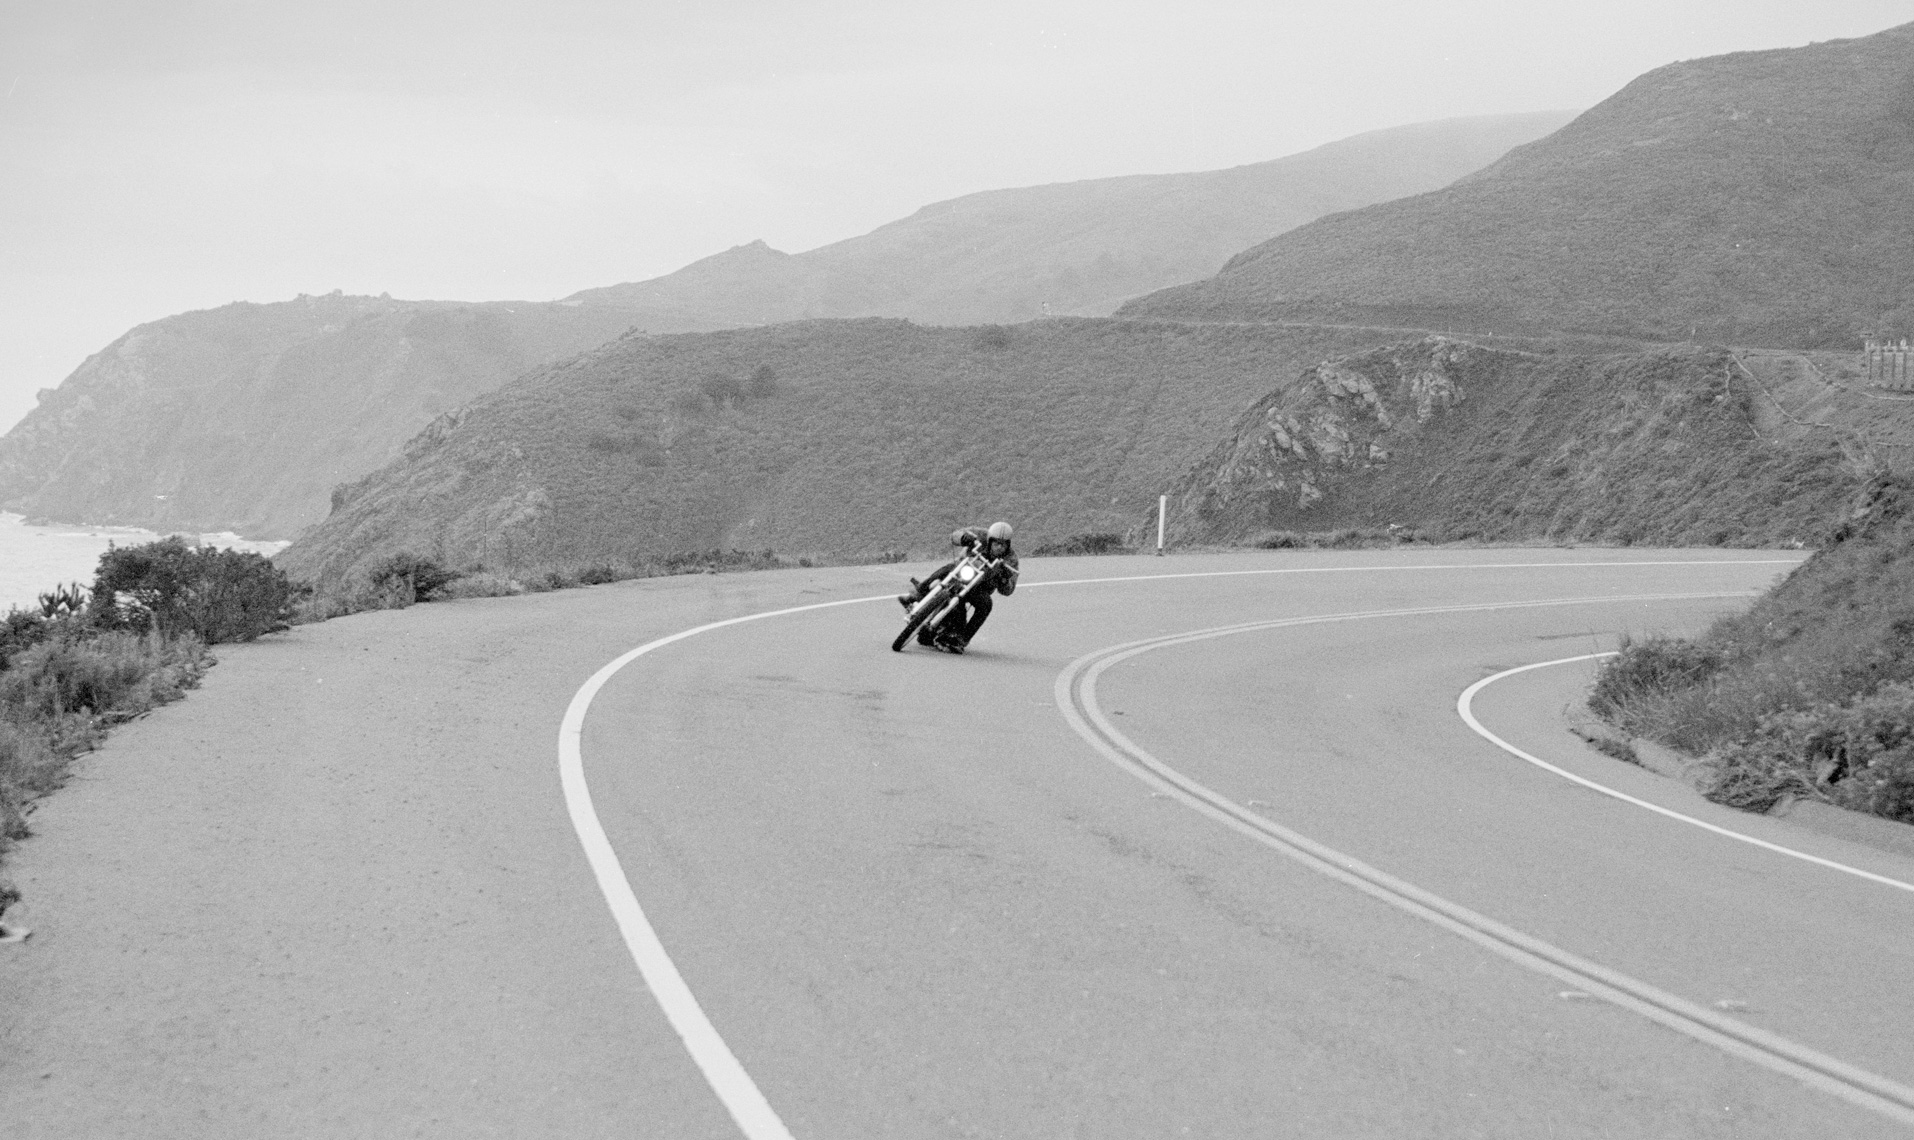 me-highway-1-california-2009-v.2-black-and-white-monster-children.jpg